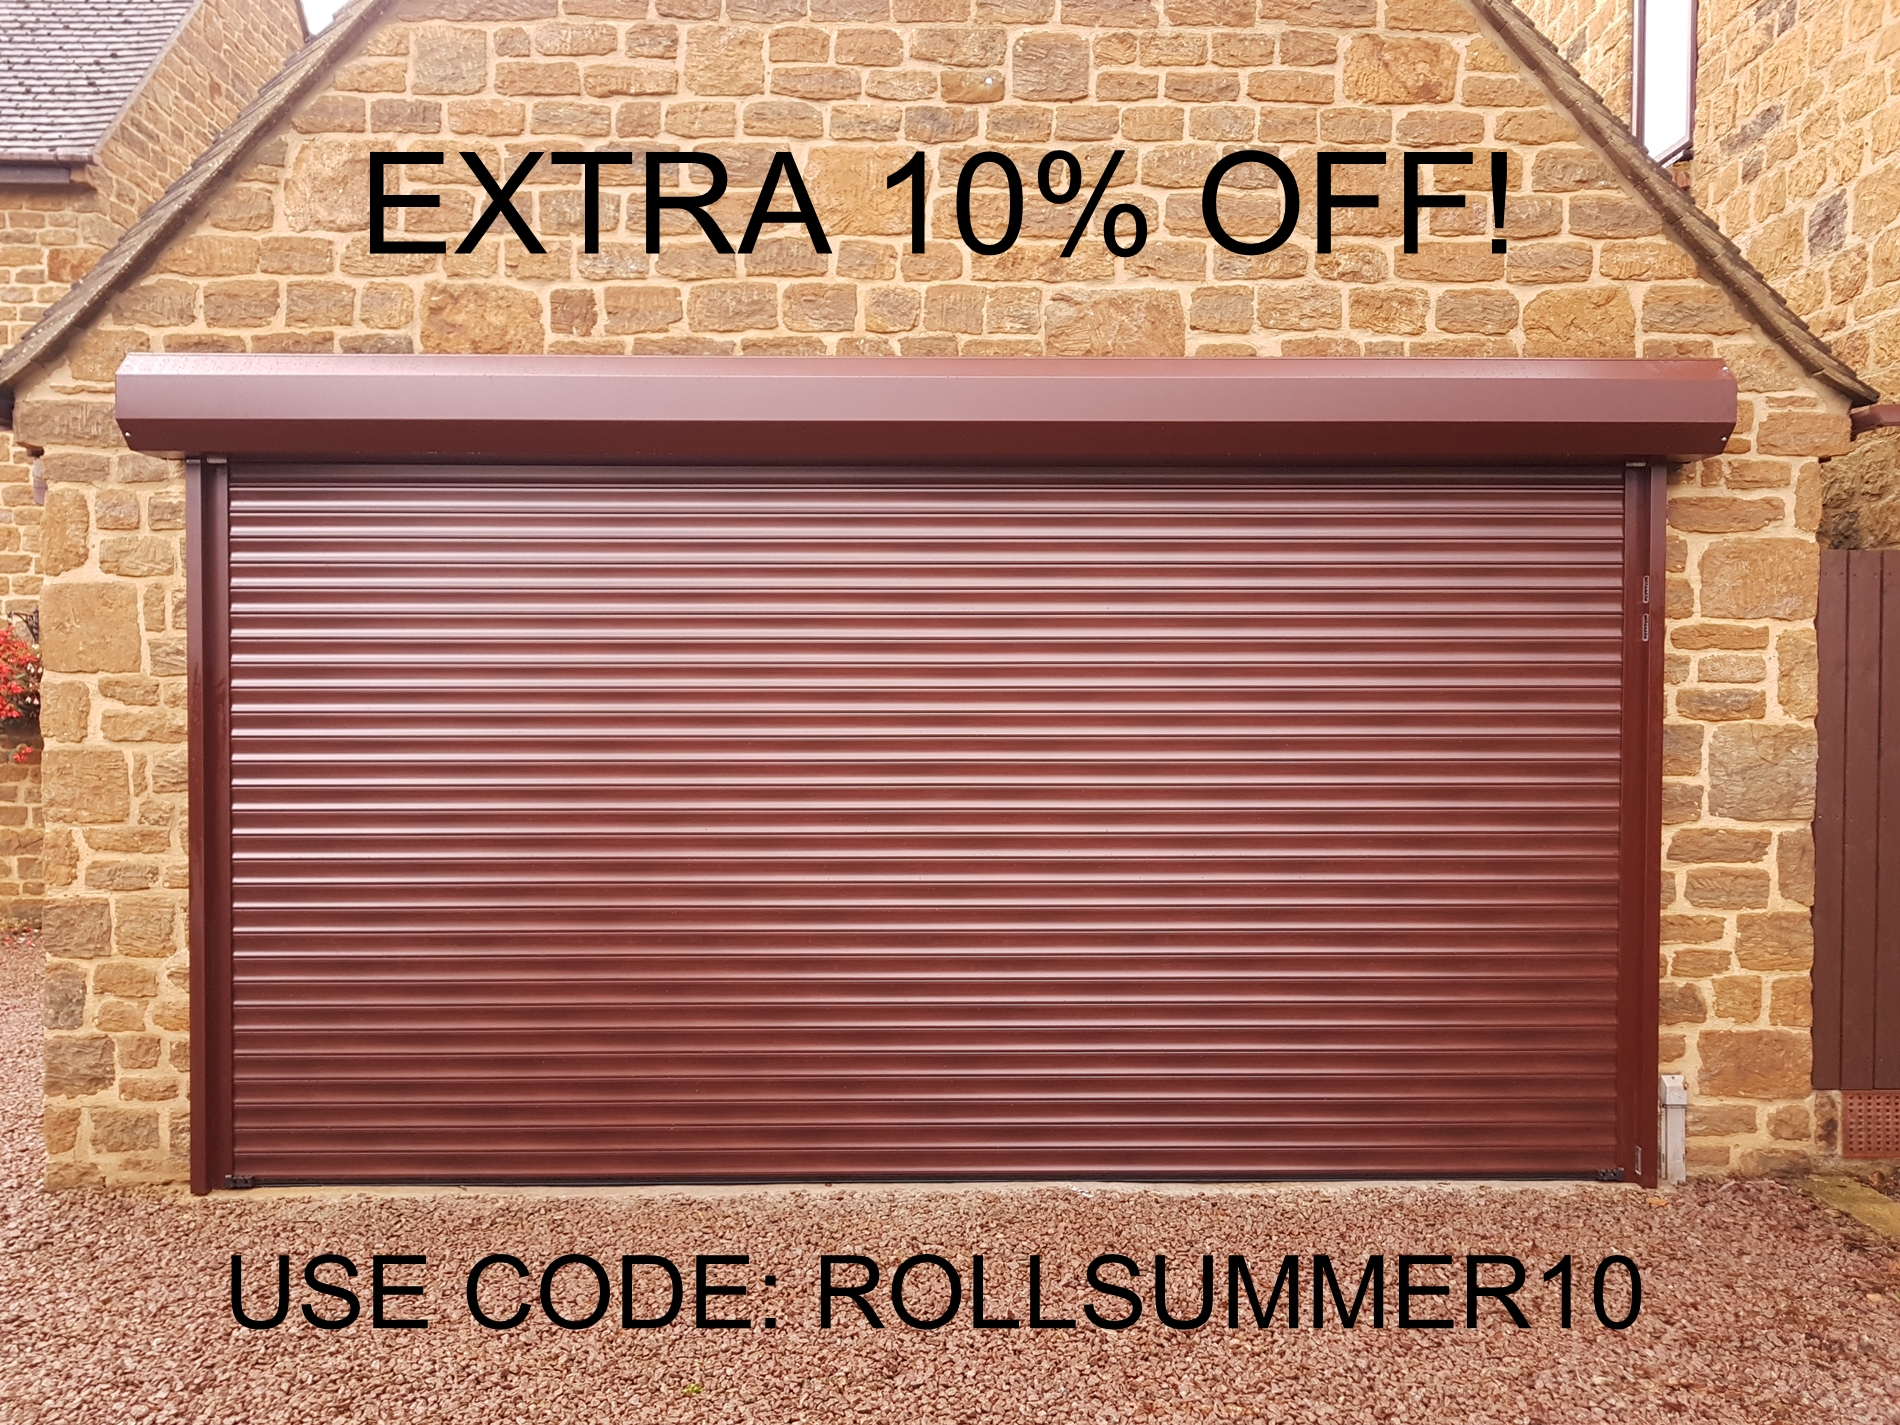 Black Friday Roller Garage Doors